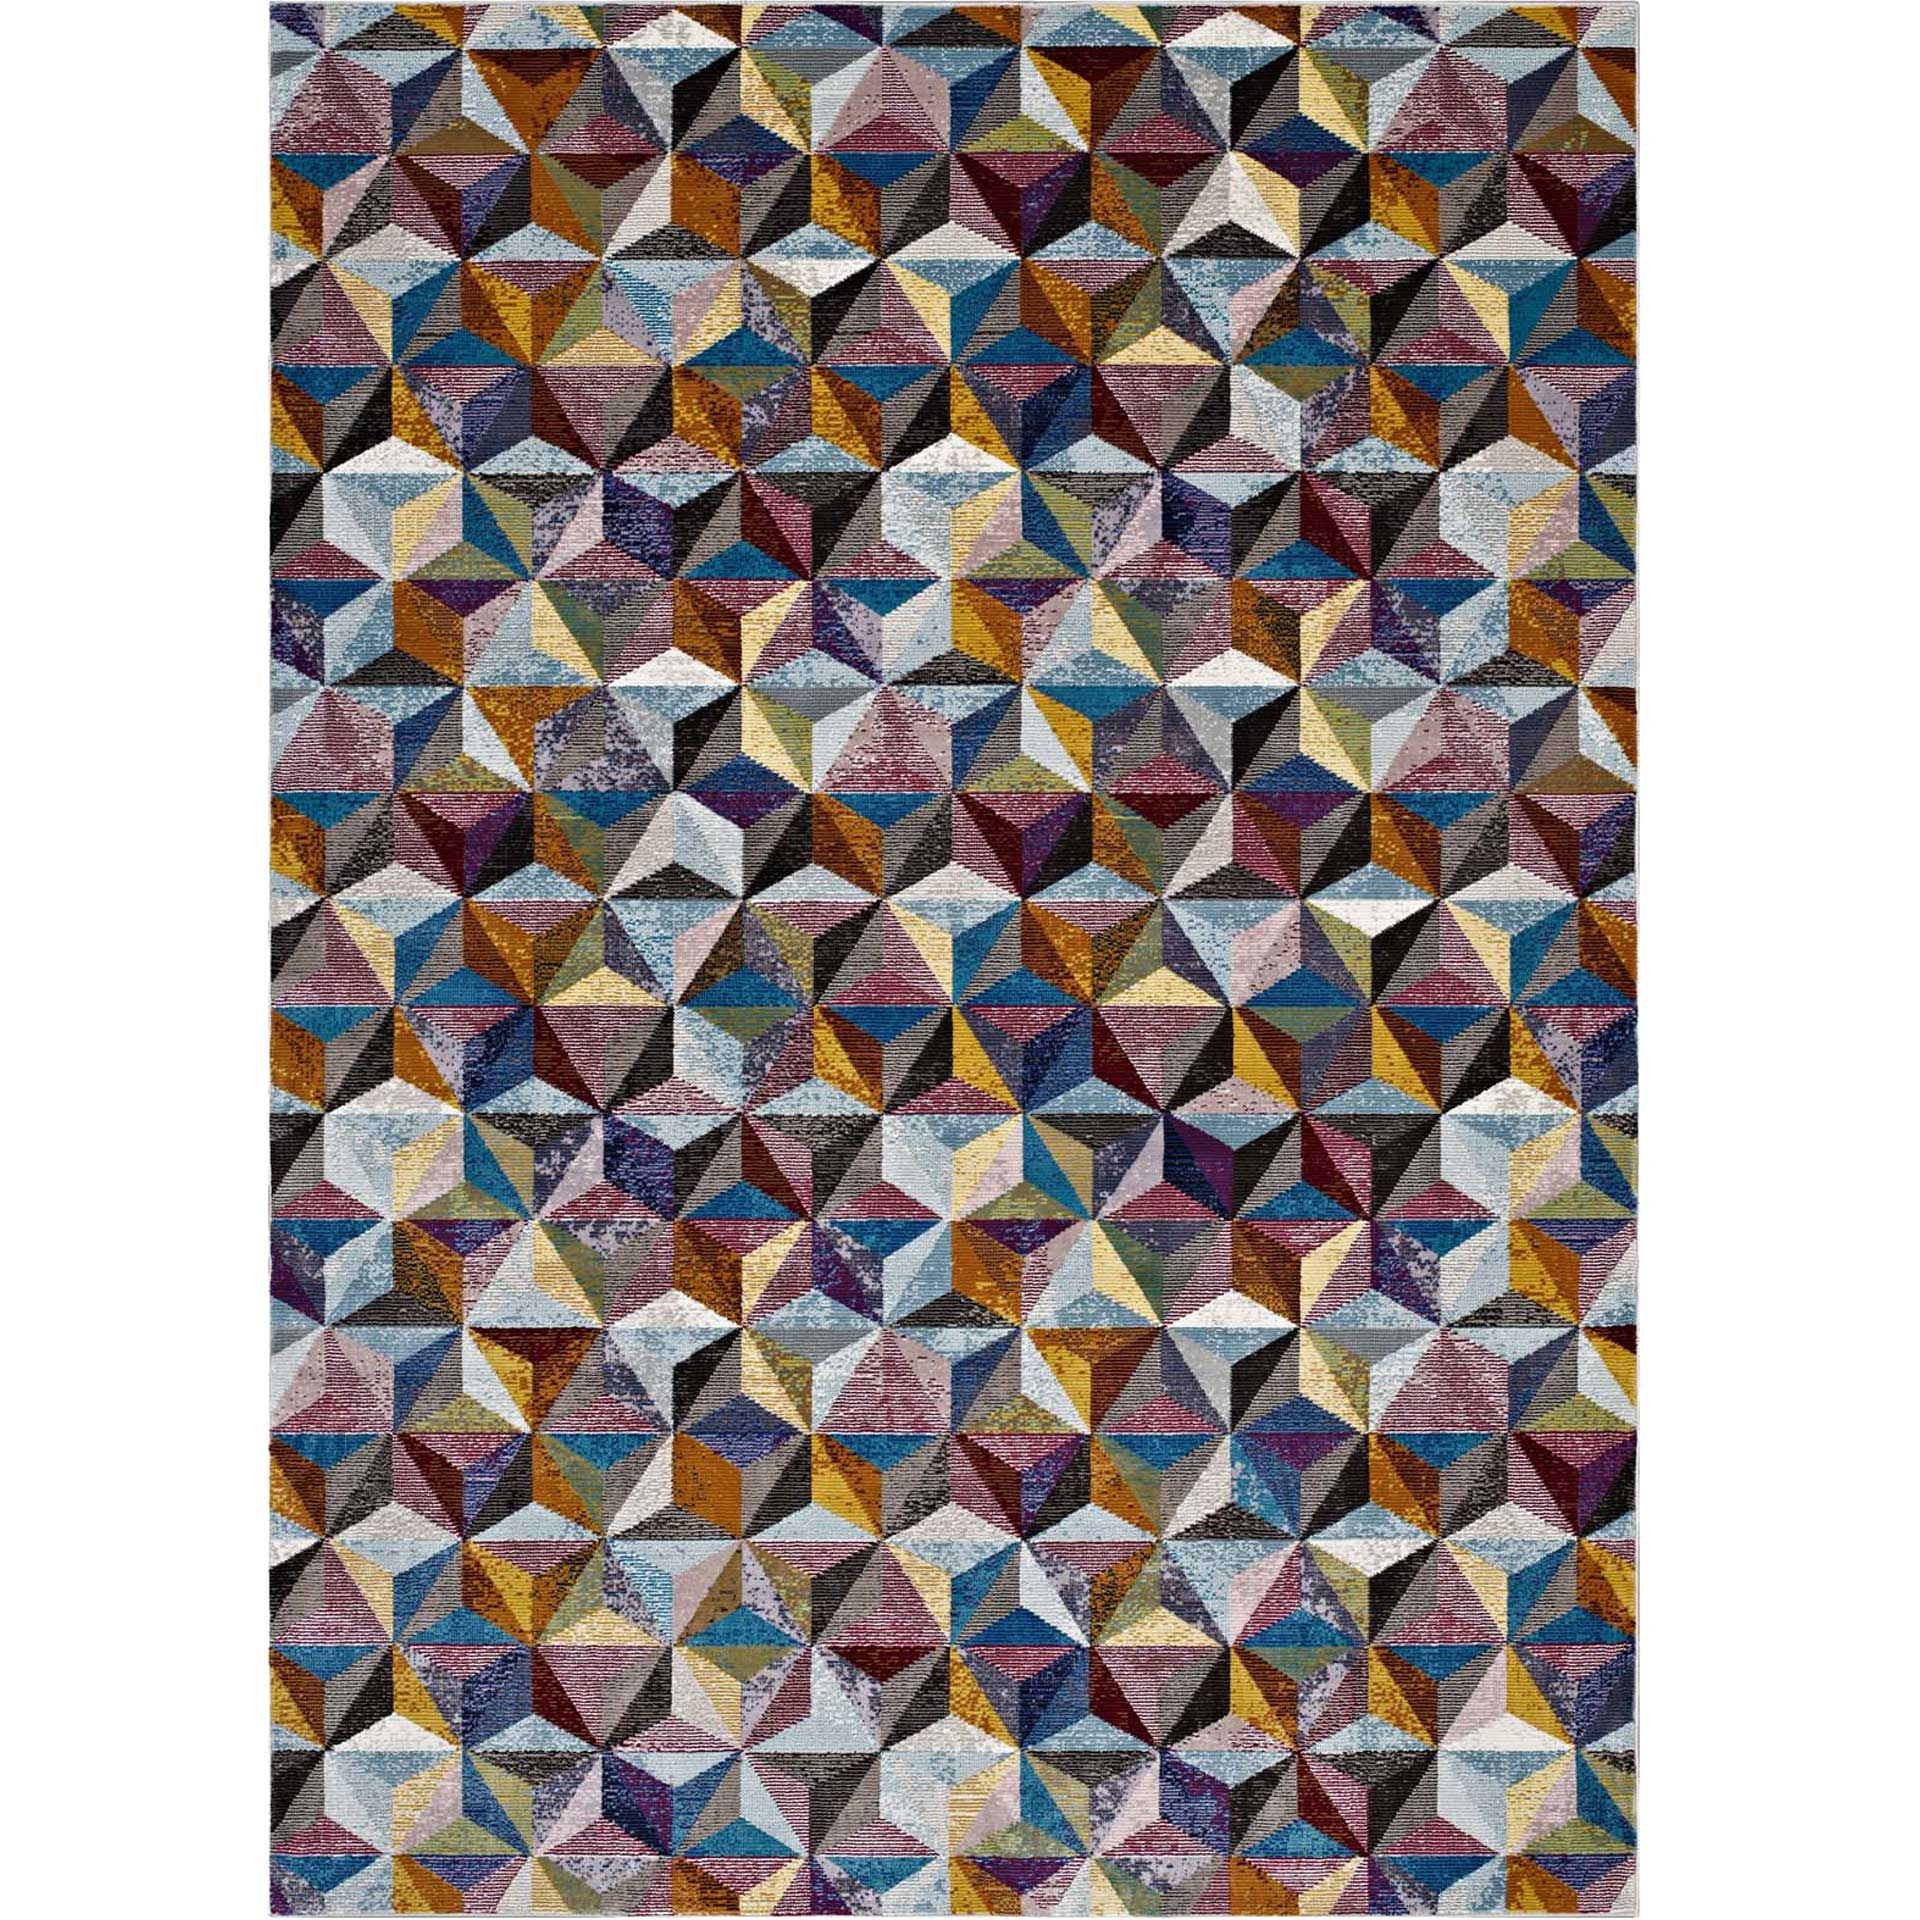 Aaron Area Rug Multicolored